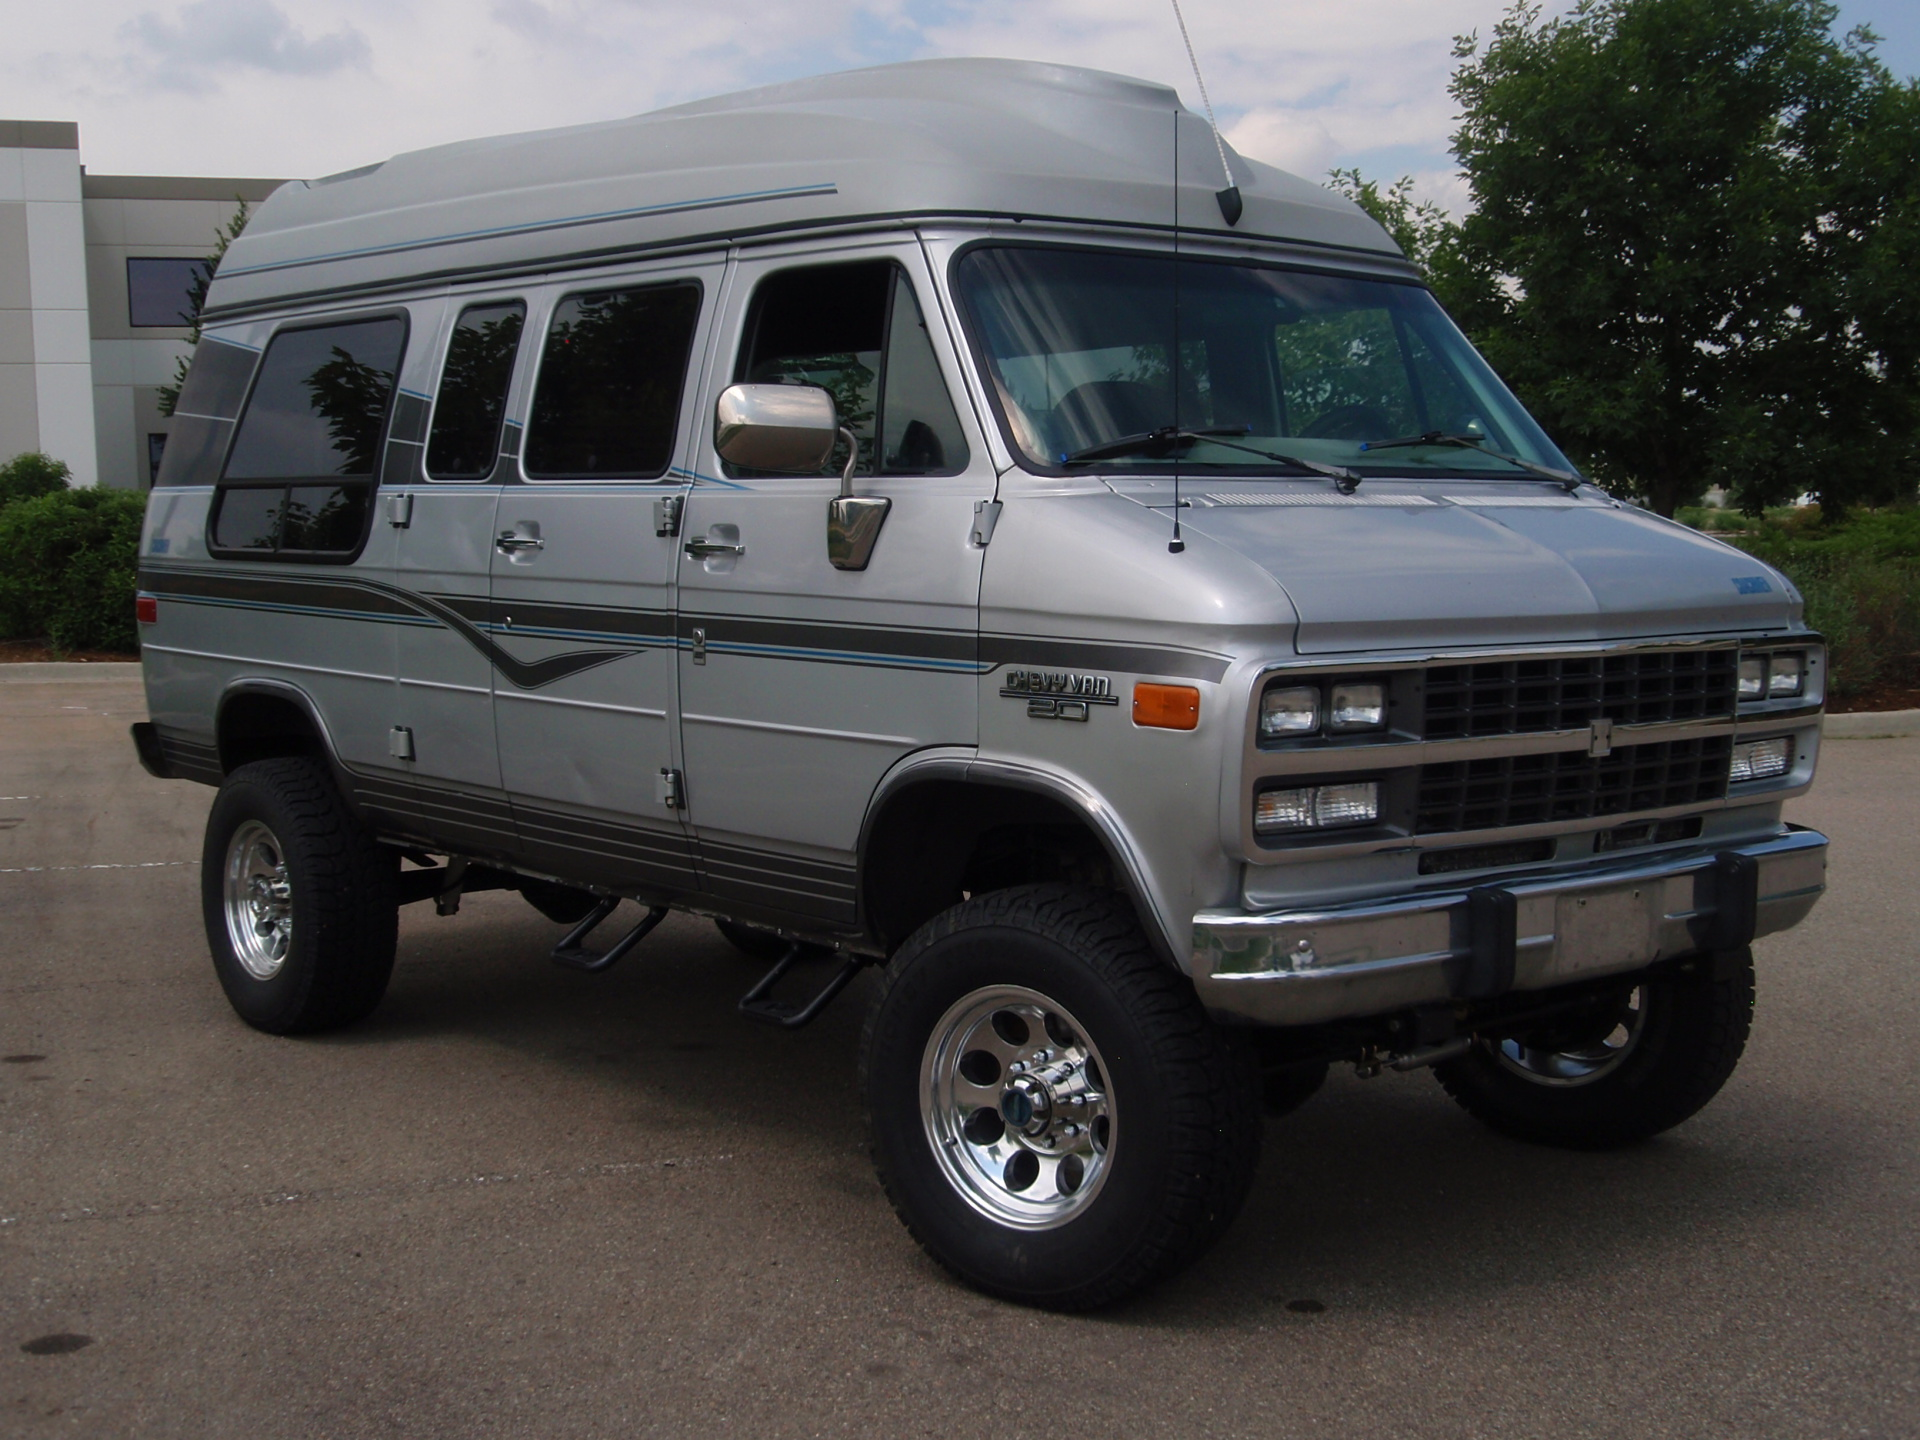 4x4 Chevy Van Conversion kit